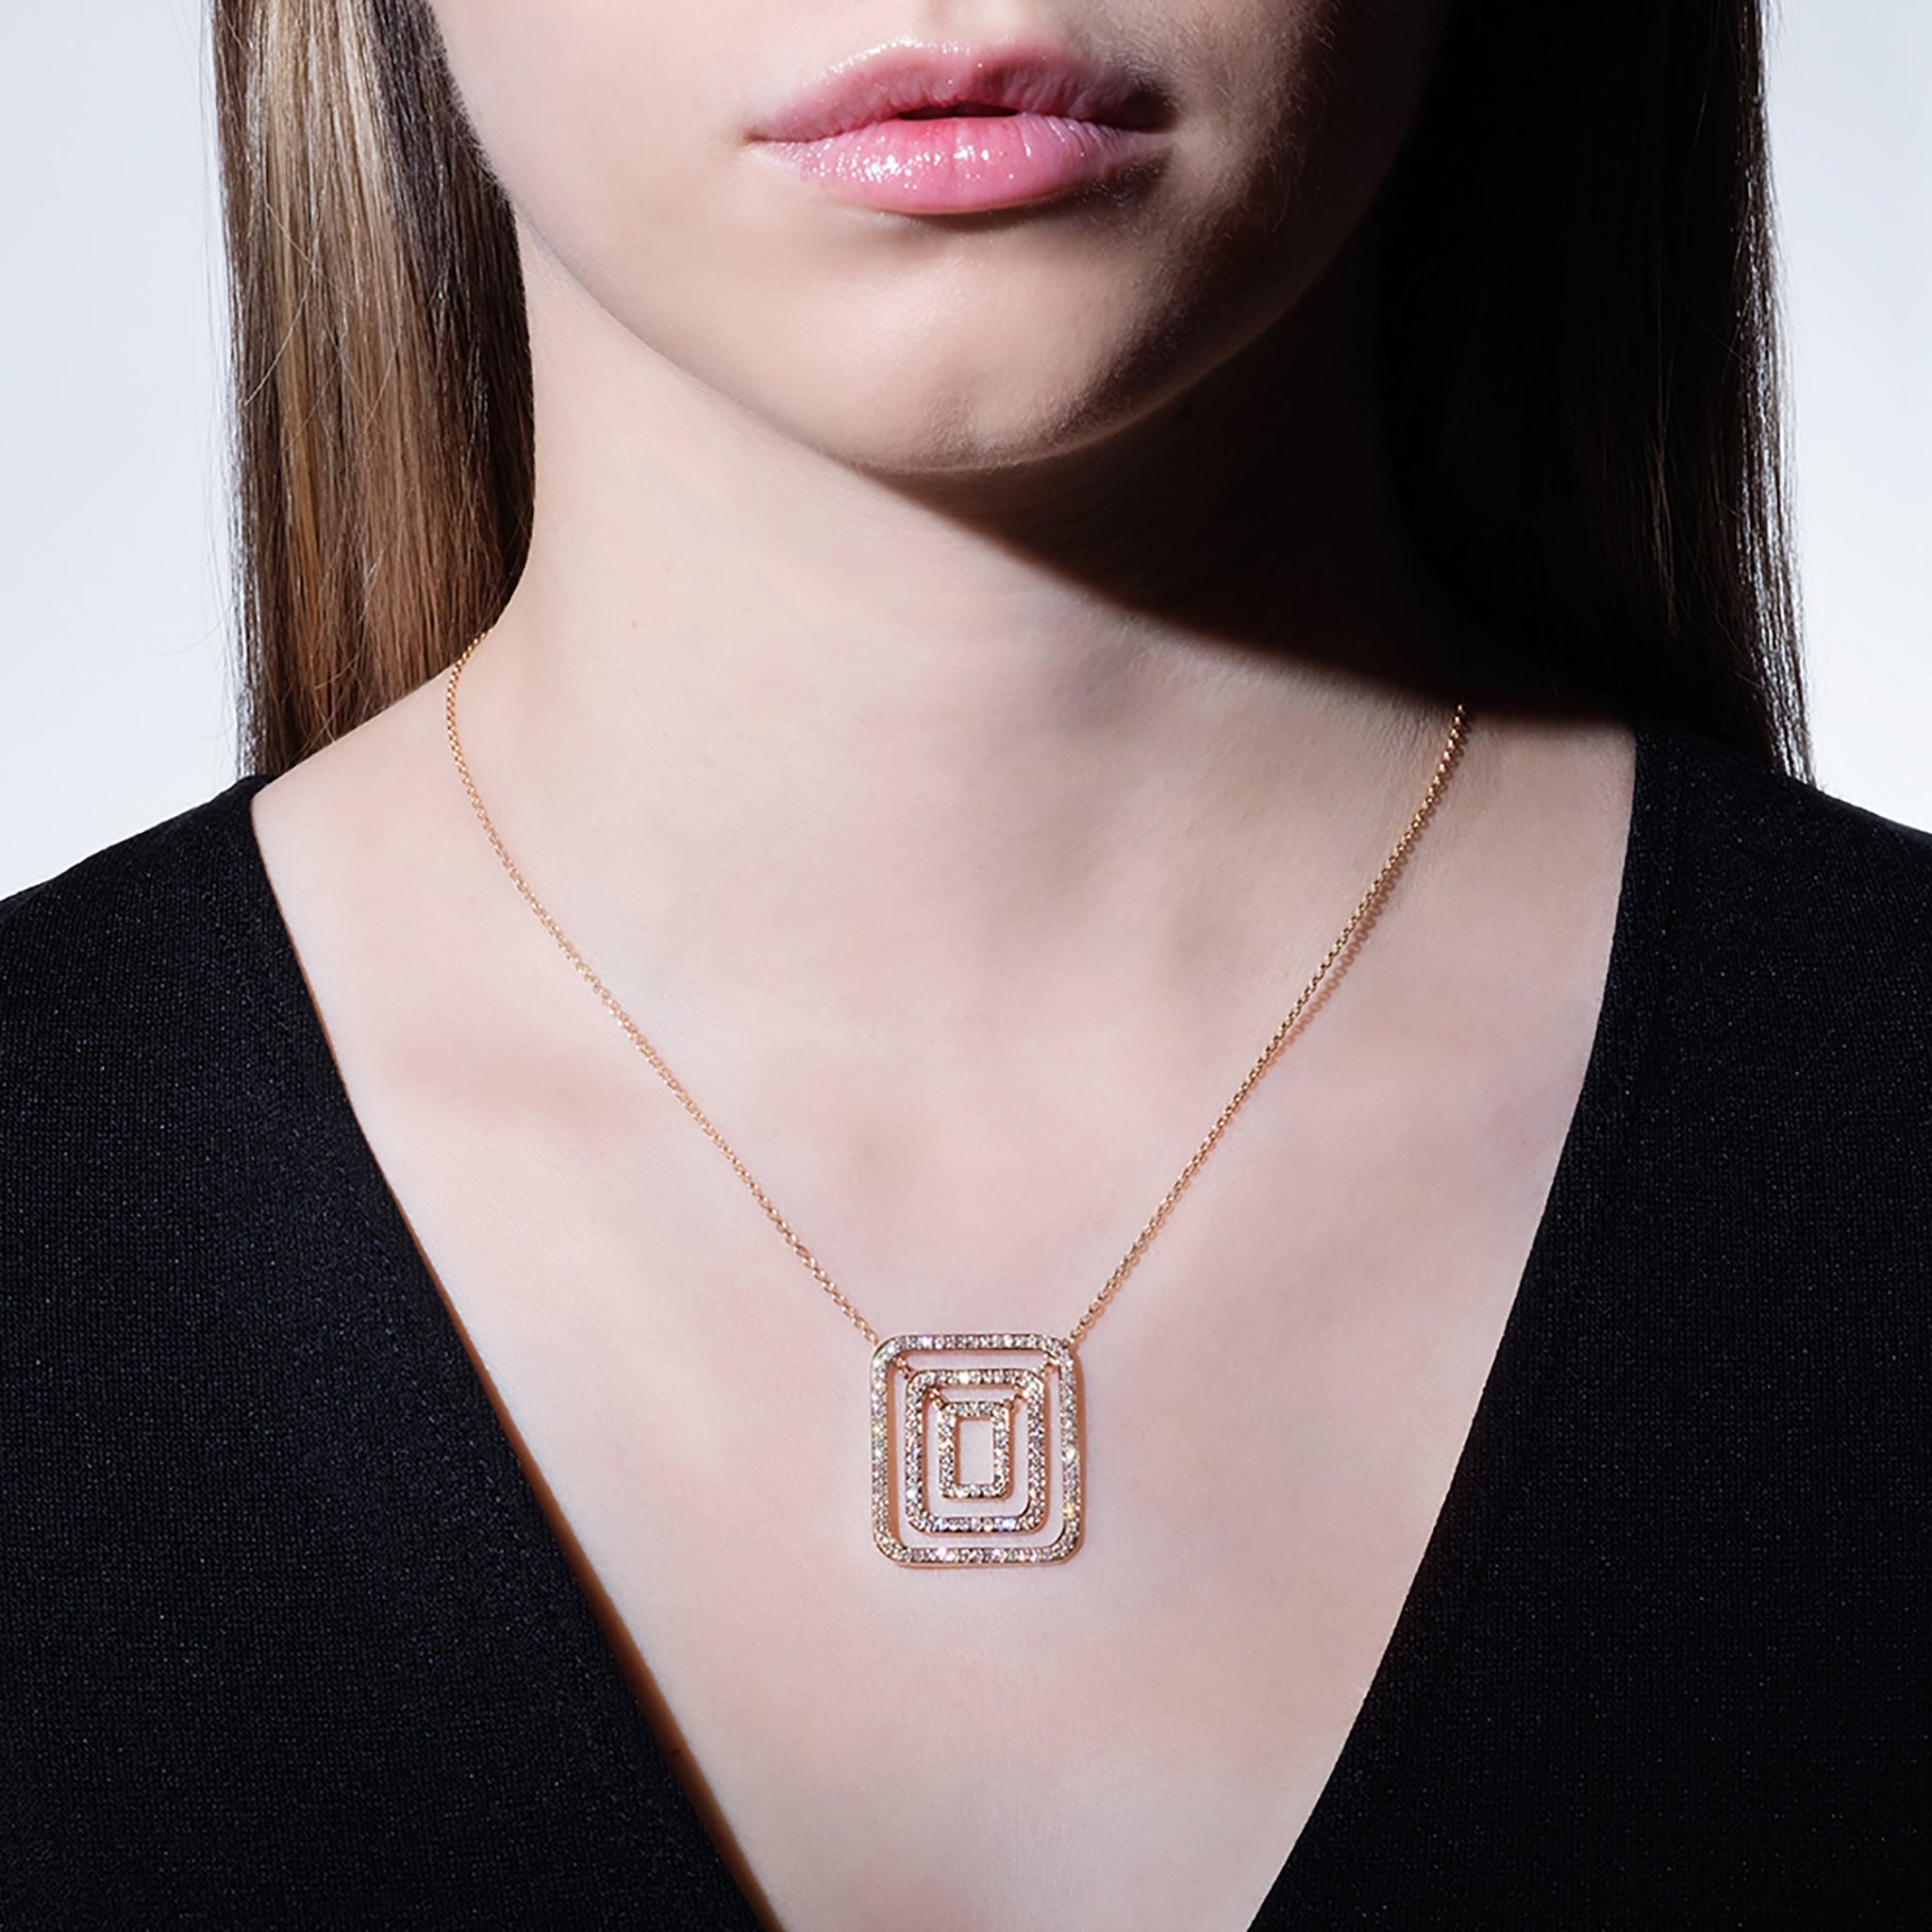 Mimi-So-Medium-Piece-Square-Swing-Necklace